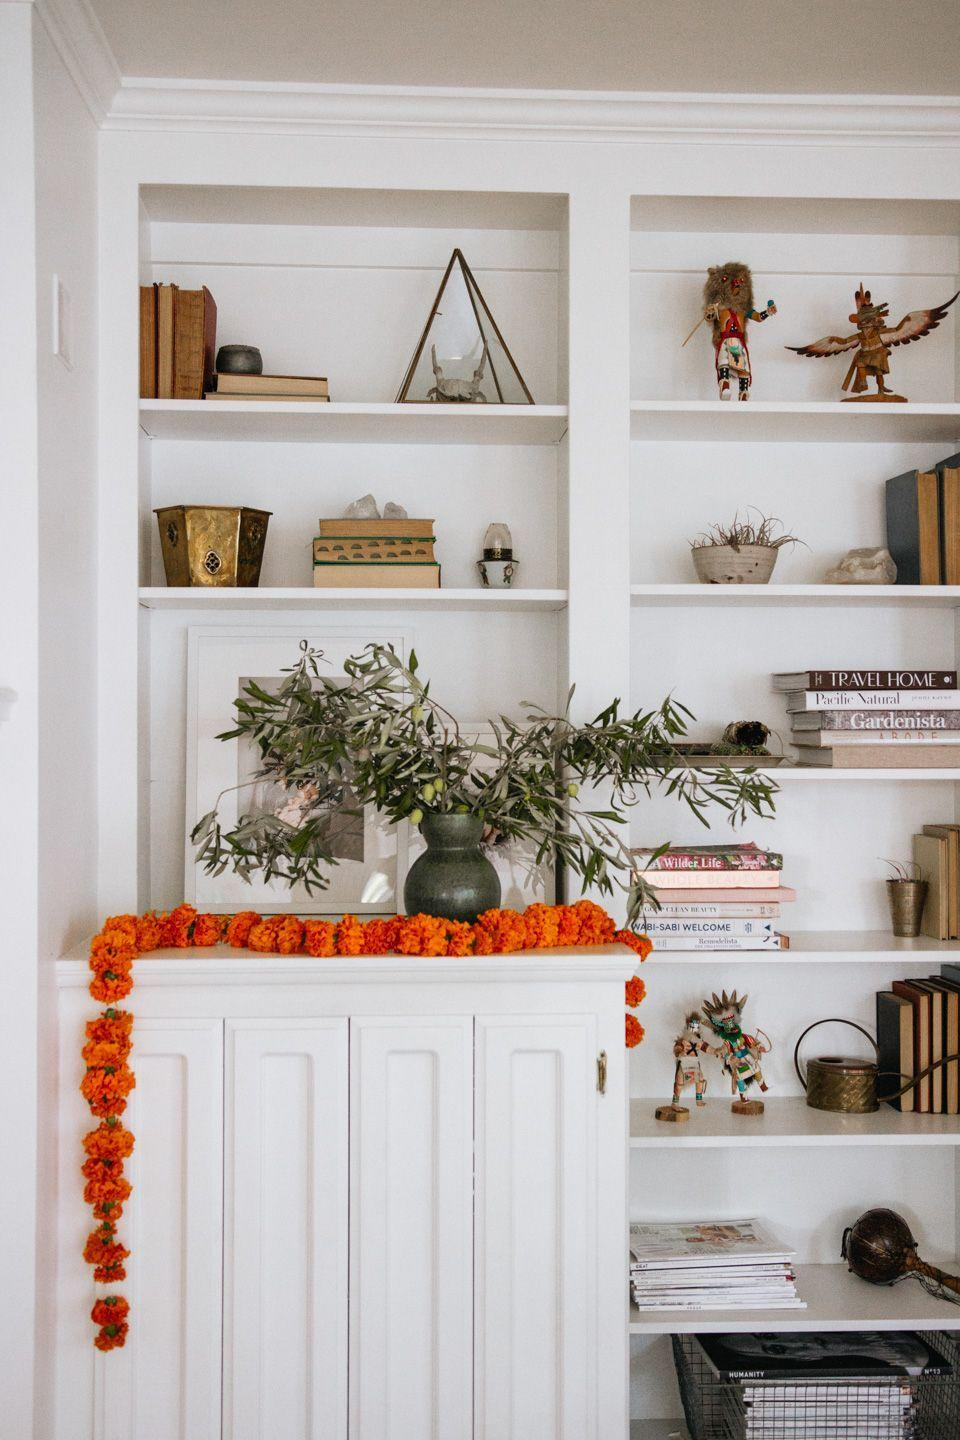 "<p>Marigolds bloom into the fall, which is why Alicia at <a href=""https://cheetahisthenewblack.com/living/baby/diy-marigold-garland/"" rel=""nofollow noopener"" target=""_blank"" data-ylk=""slk:Cheetah is the New Black"" class=""link rapid-noclick-resp"">Cheetah is the New Black</a> blog used them for this bright and festive garland. Simply stitch together some flowers with a needle and thread, then lay or hang the finished product wherever you please.</p><p><a class=""link rapid-noclick-resp"" href=""https://go.redirectingat.com?id=74968X1596630&url=https%3A%2F%2Fwww.michaels.com%2Floops-and-threads-sewing-kit%2F10340631.html&sref=https%3A%2F%2Fwww.delish.com%2Fholiday-recipes%2Fthanksgiving%2Fg33808794%2Fthanksgiving-decorations%2F"" rel=""nofollow noopener"" target=""_blank"" data-ylk=""slk:BUY NOW"">BUY NOW</a> <strong><em>Sewing kit, $4.29</em></strong></p>"